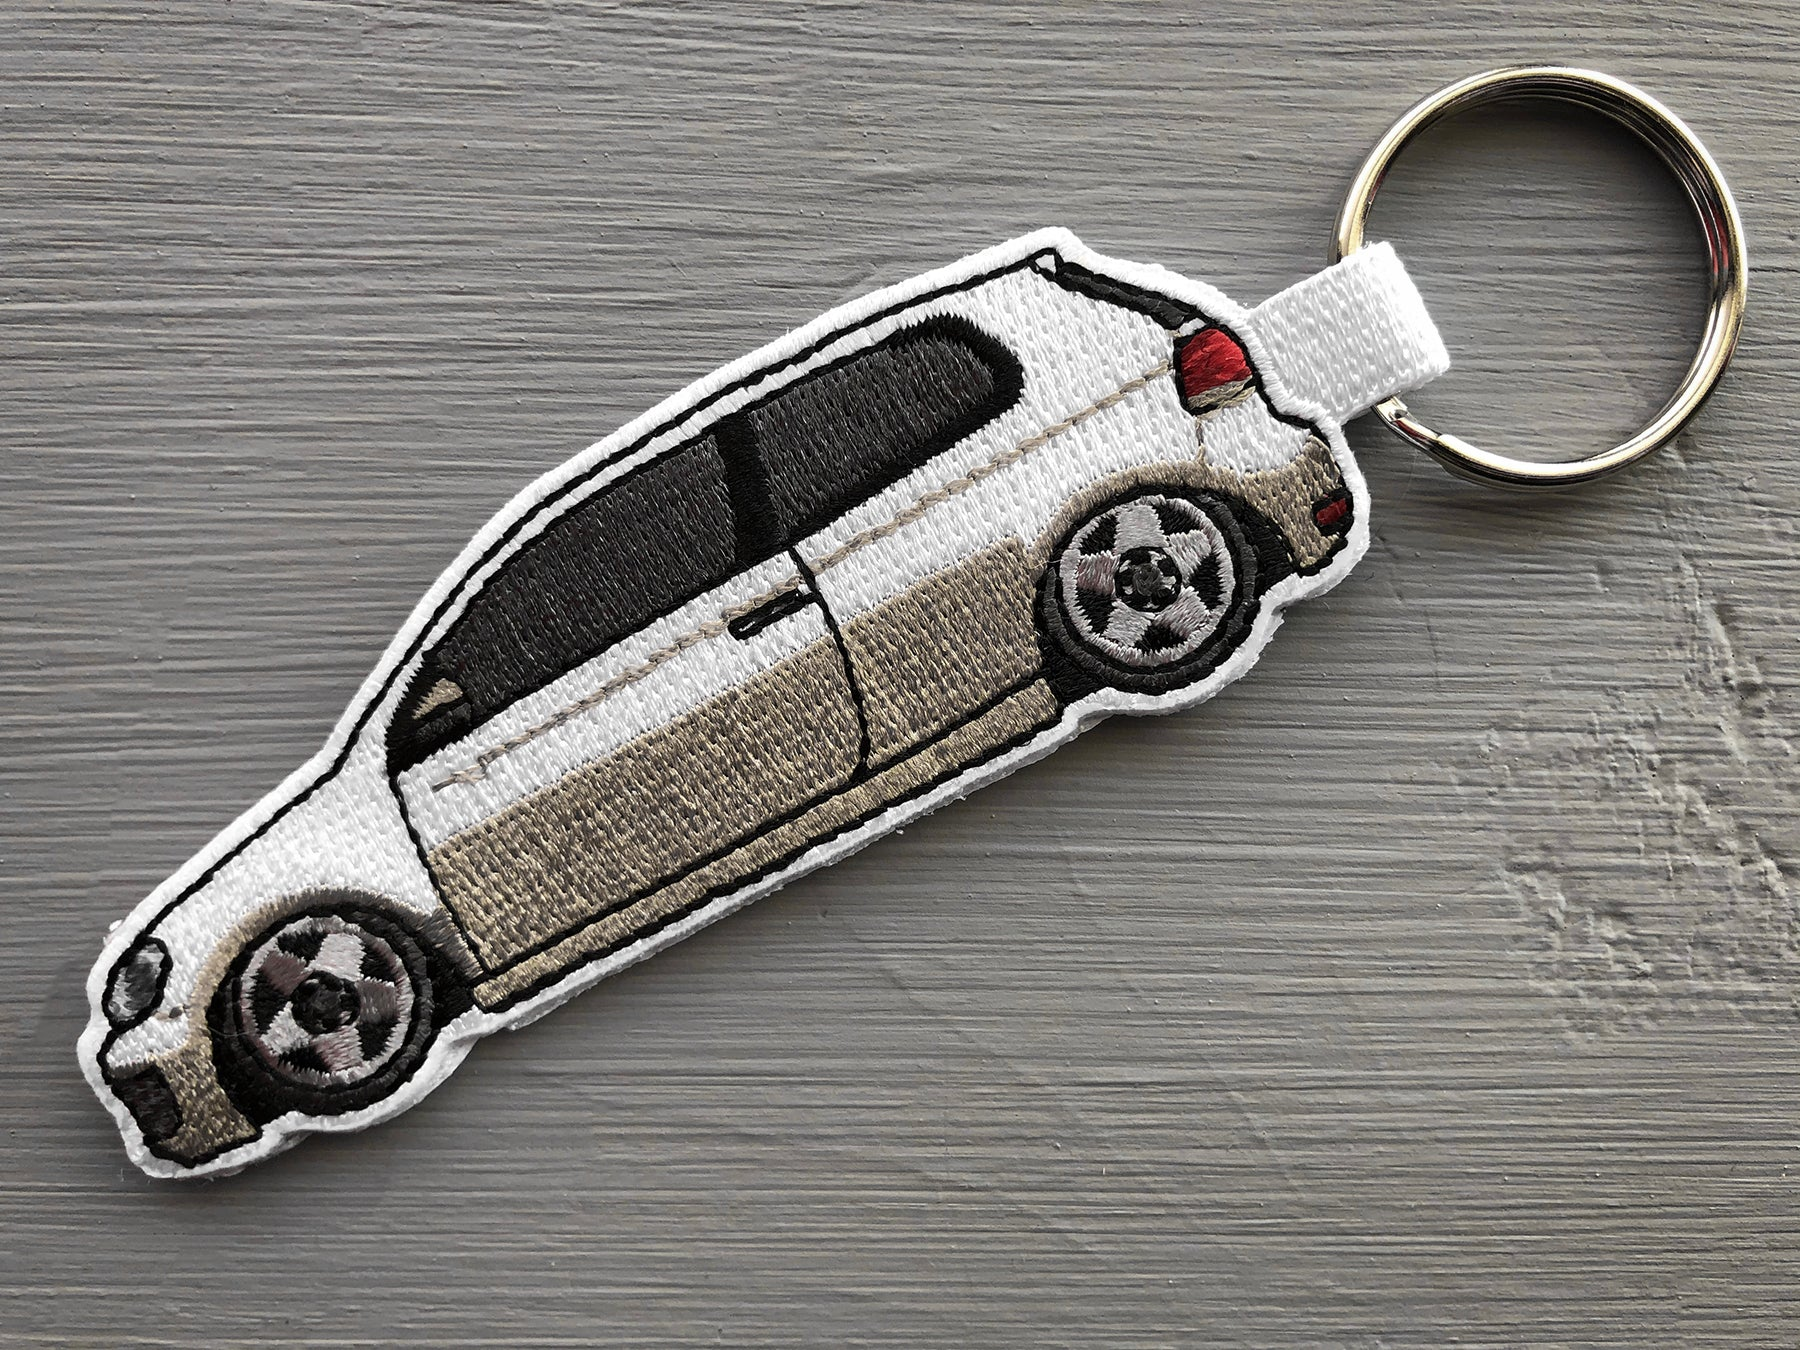 mk6 golf key chain